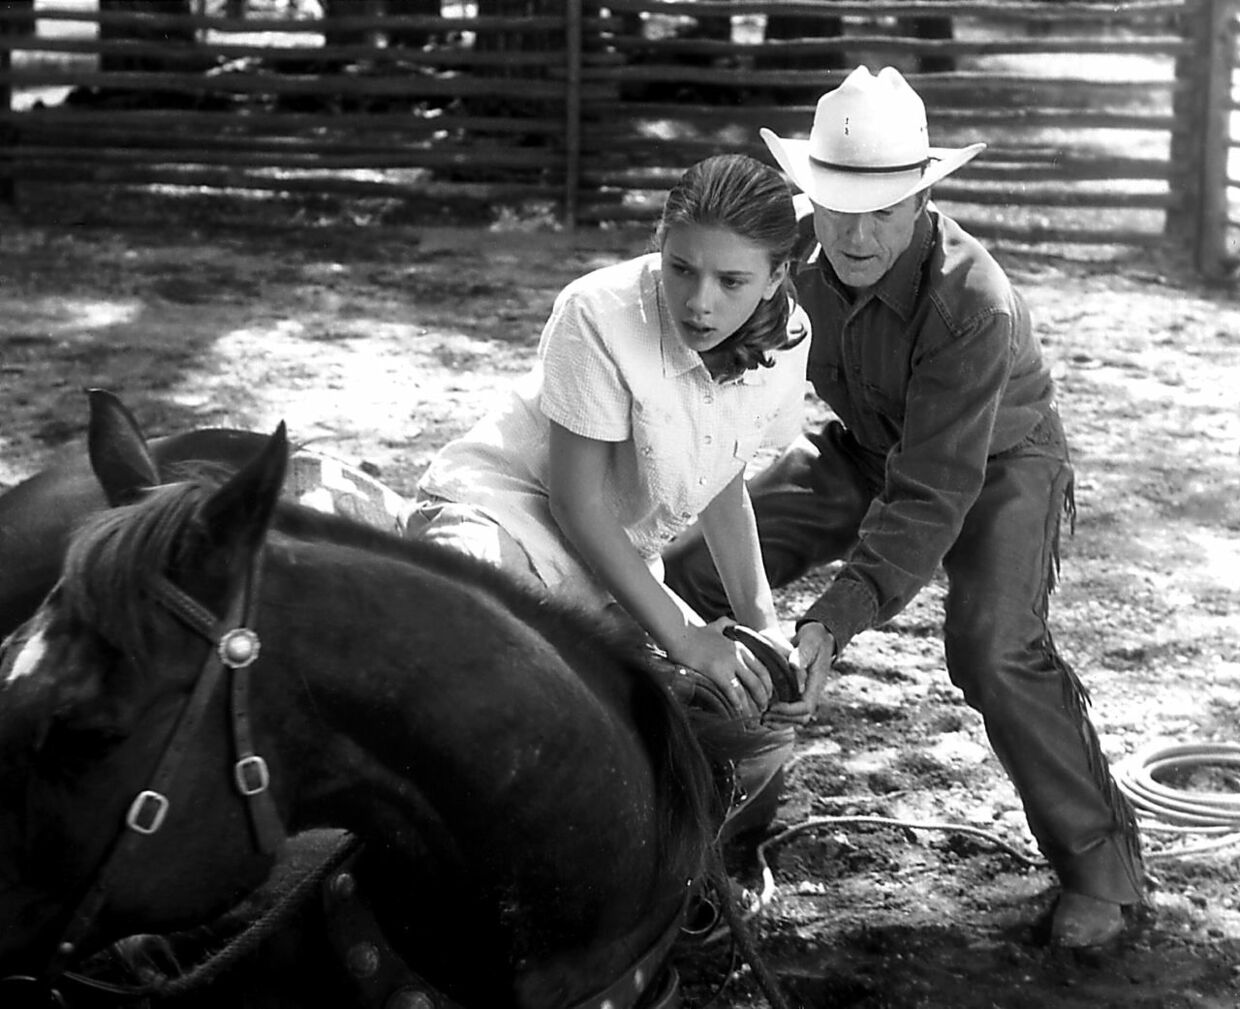 """In an emotional scene from the movie """"The Horse Whisperer, """" actress Scarlett Johansson (L), is helped into the saddle by actor Robert Redford after being traumatized in a horseback riding accident. The movie is based on the best-selling book """"The Horse Whisperer"""" by Nicholas Evans who regularly consulted with renowned horse trainer Monty Roberts. (B/W) AFP PHOTO/Elliott MARKS/TOUCHSTONE PICTURES"""